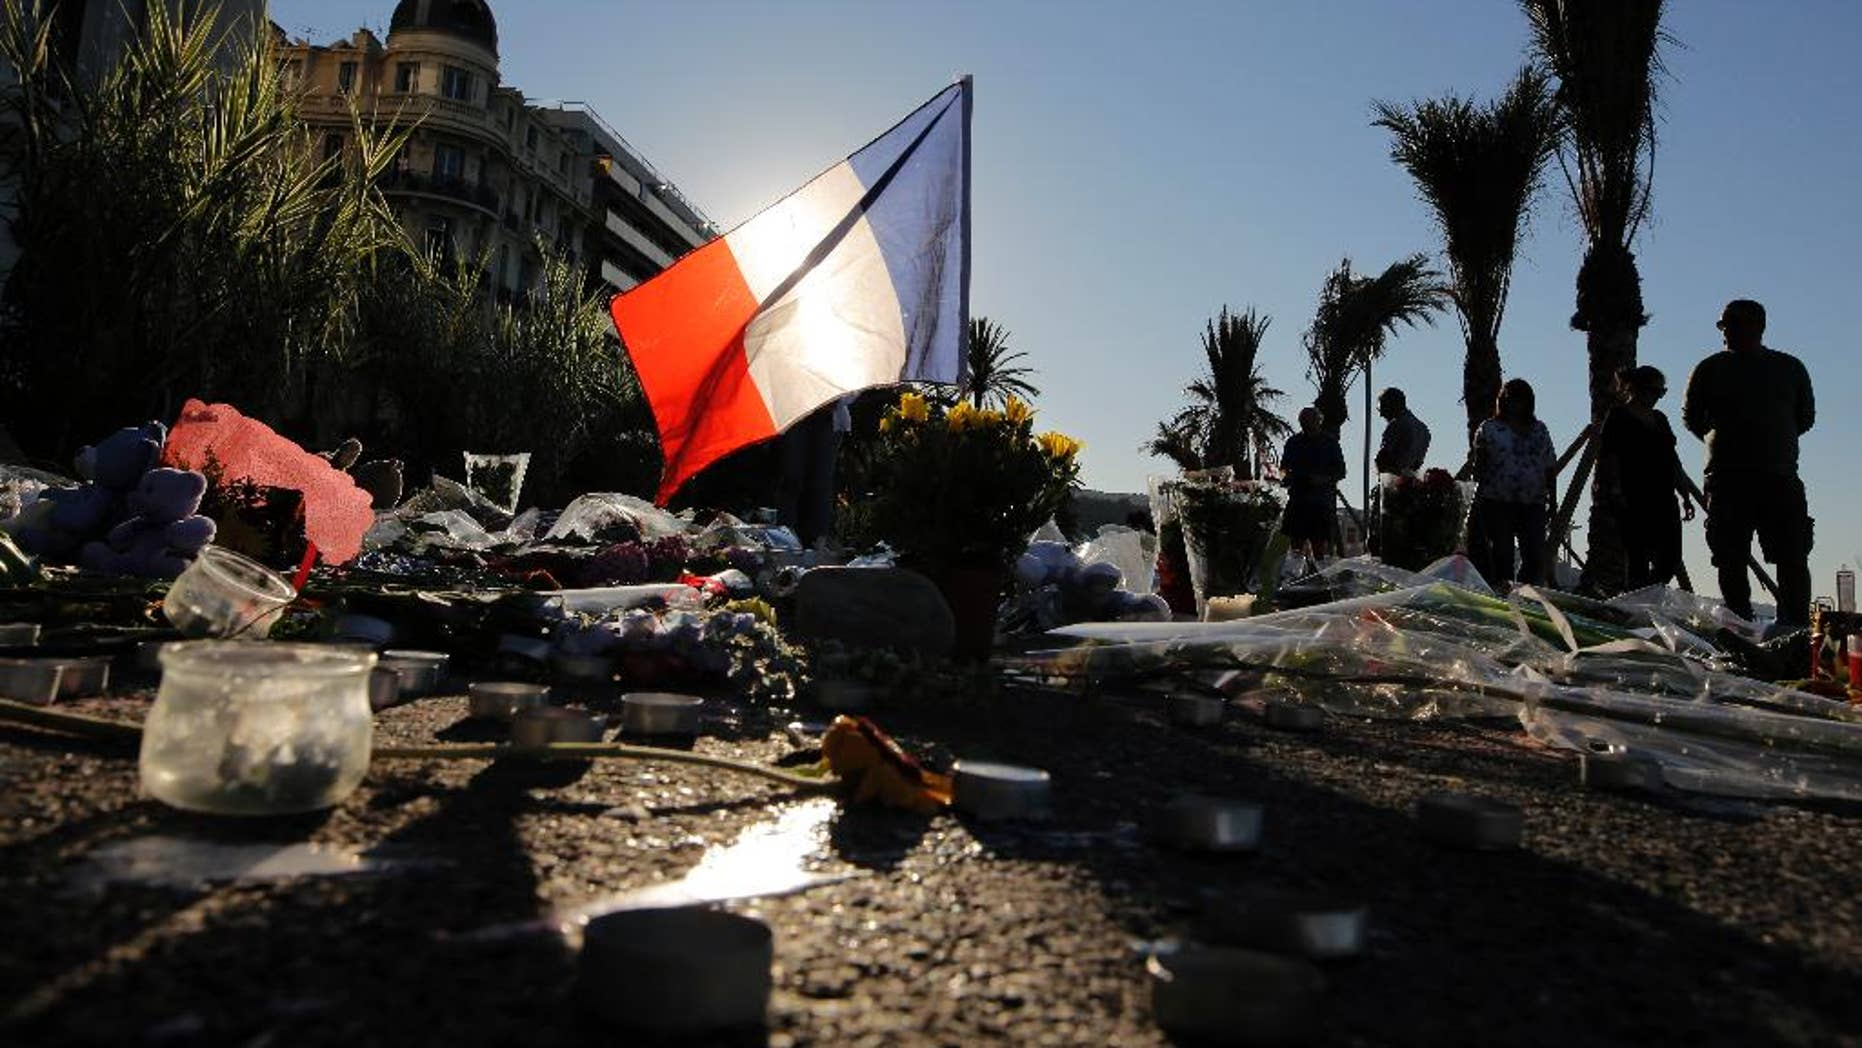 FILE - In this Sunday, July 17, 2016 file photo, a French flag stands among a floral tribute for the victims killed during a deadly attack, on the famed Boulevard des Anglais in Nice, southern France. Residents of the French Riviera city of Nice that lived through the truck rampage horror in July 2016, are reliving it this week following a chillingly similar narrative in Berlin. (AP Photo/Laurent Cipriani, File)